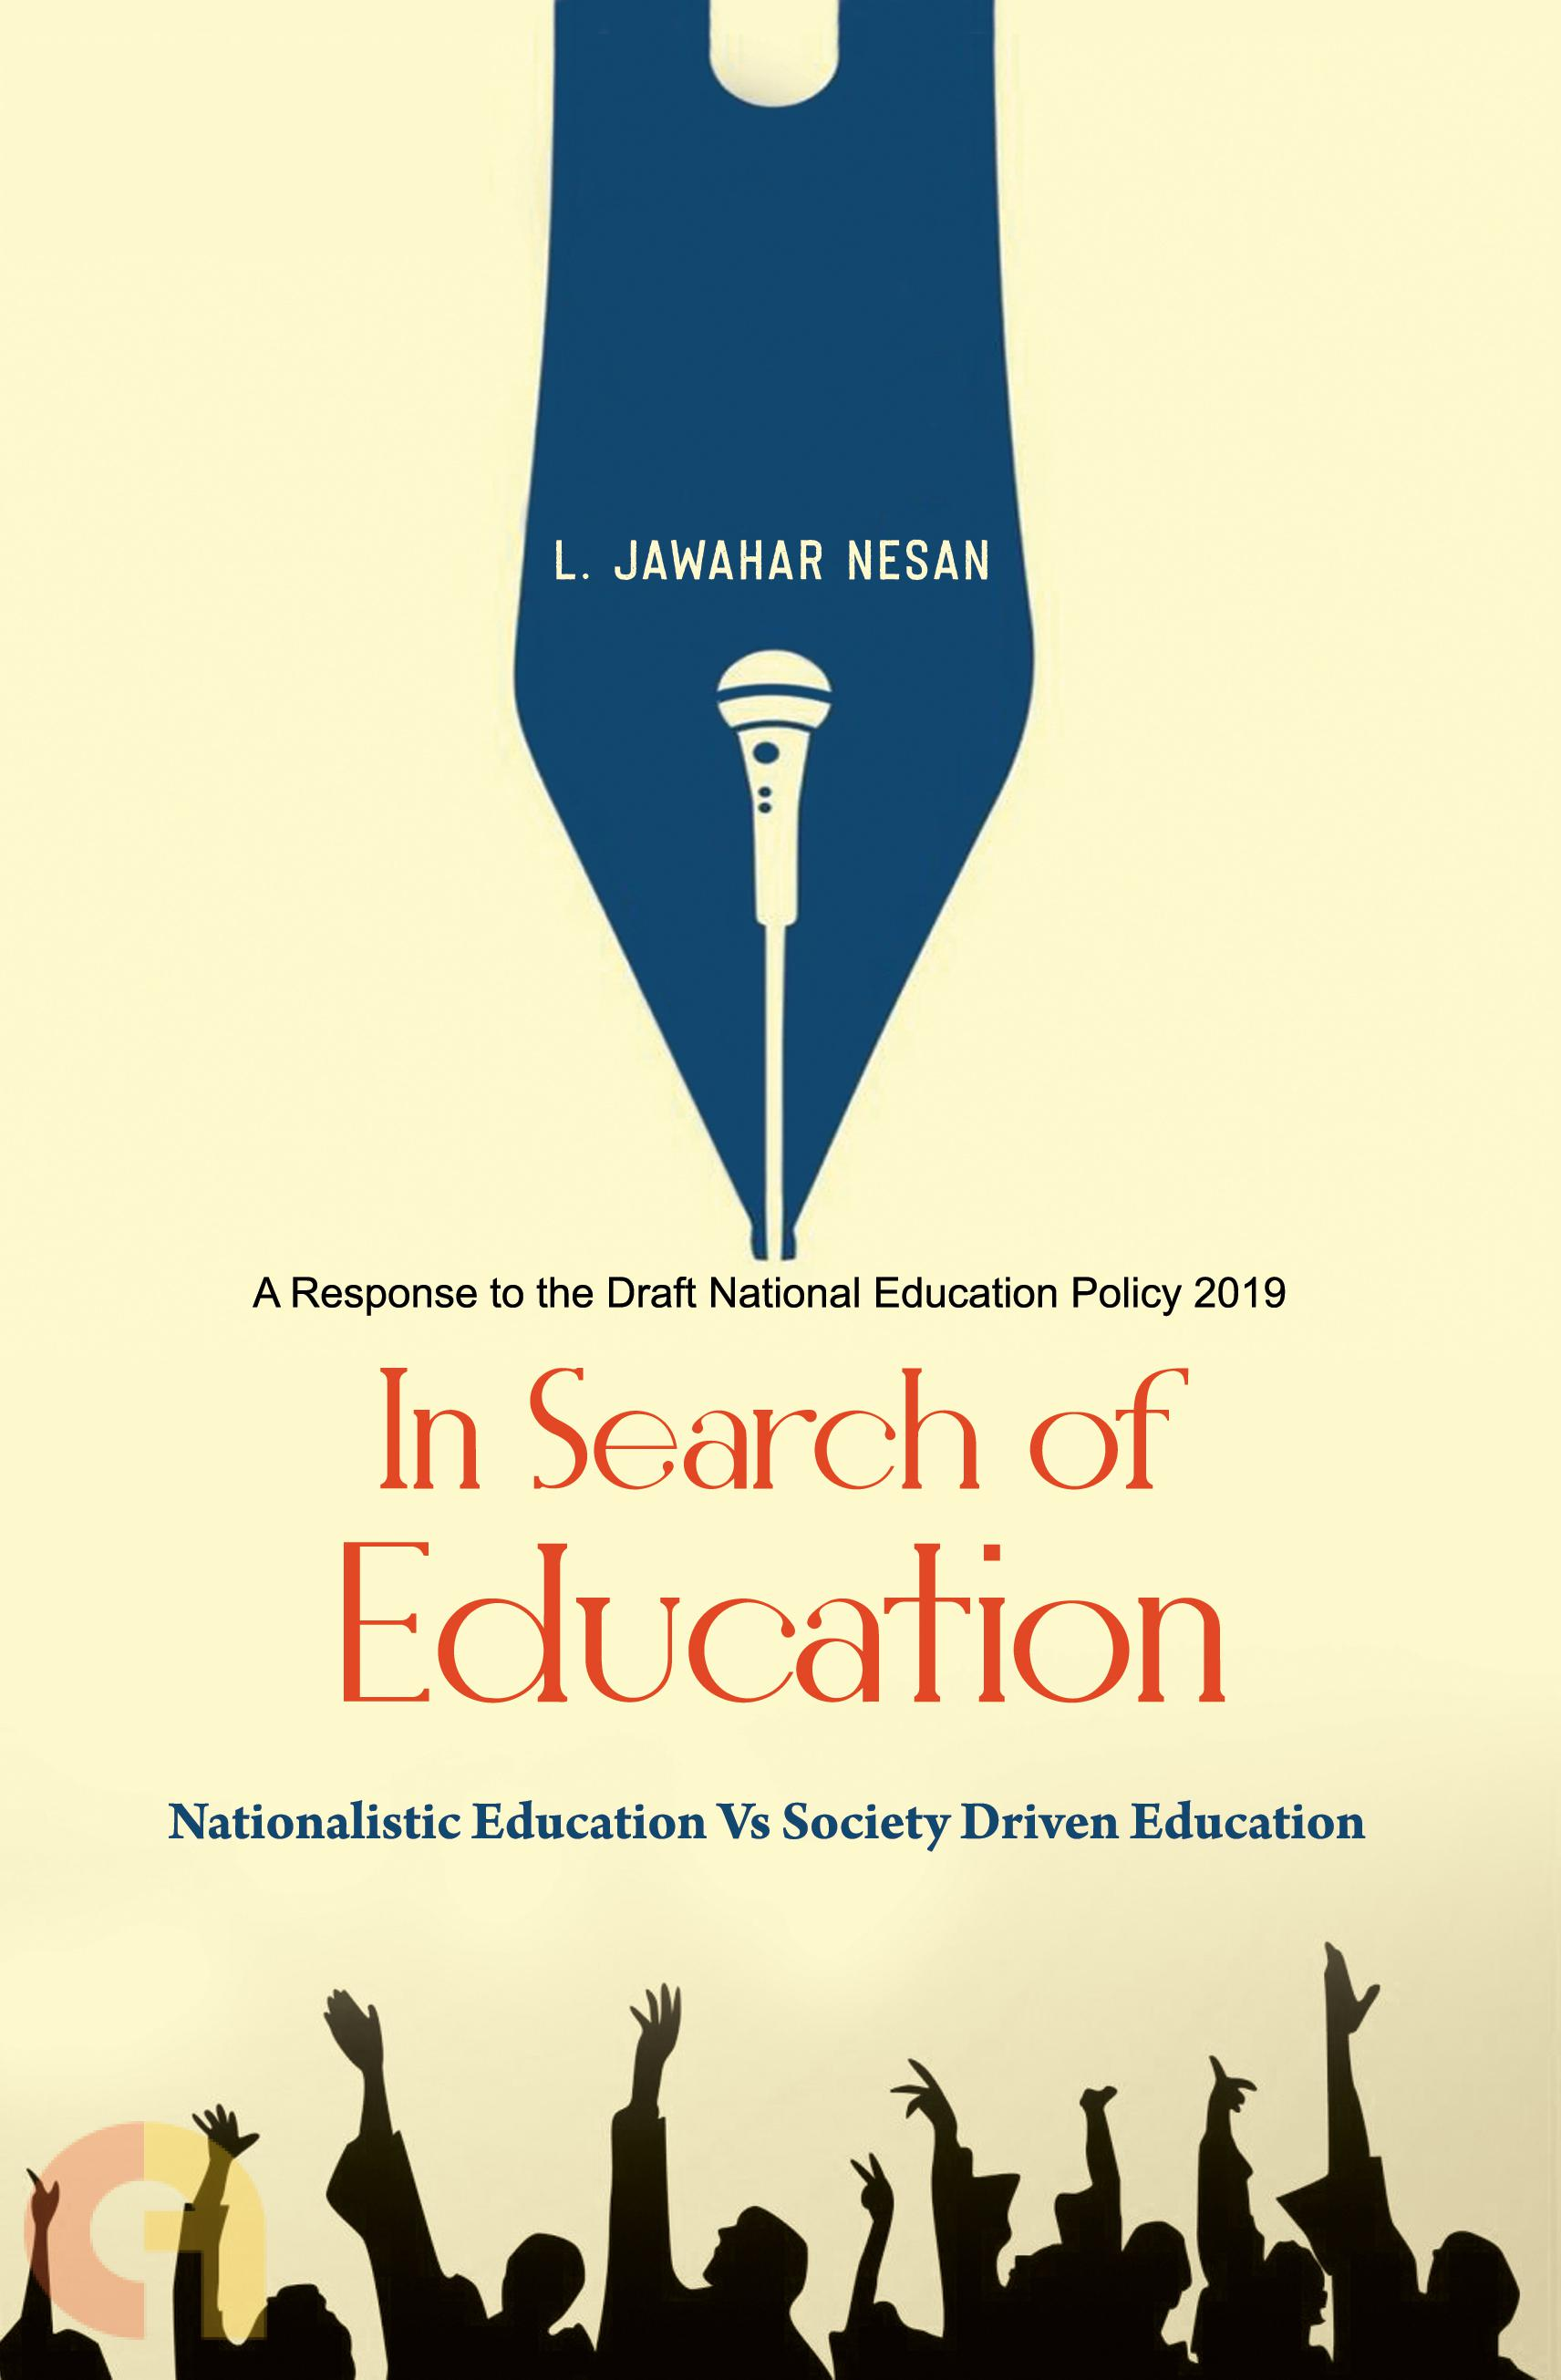 In Search of Education